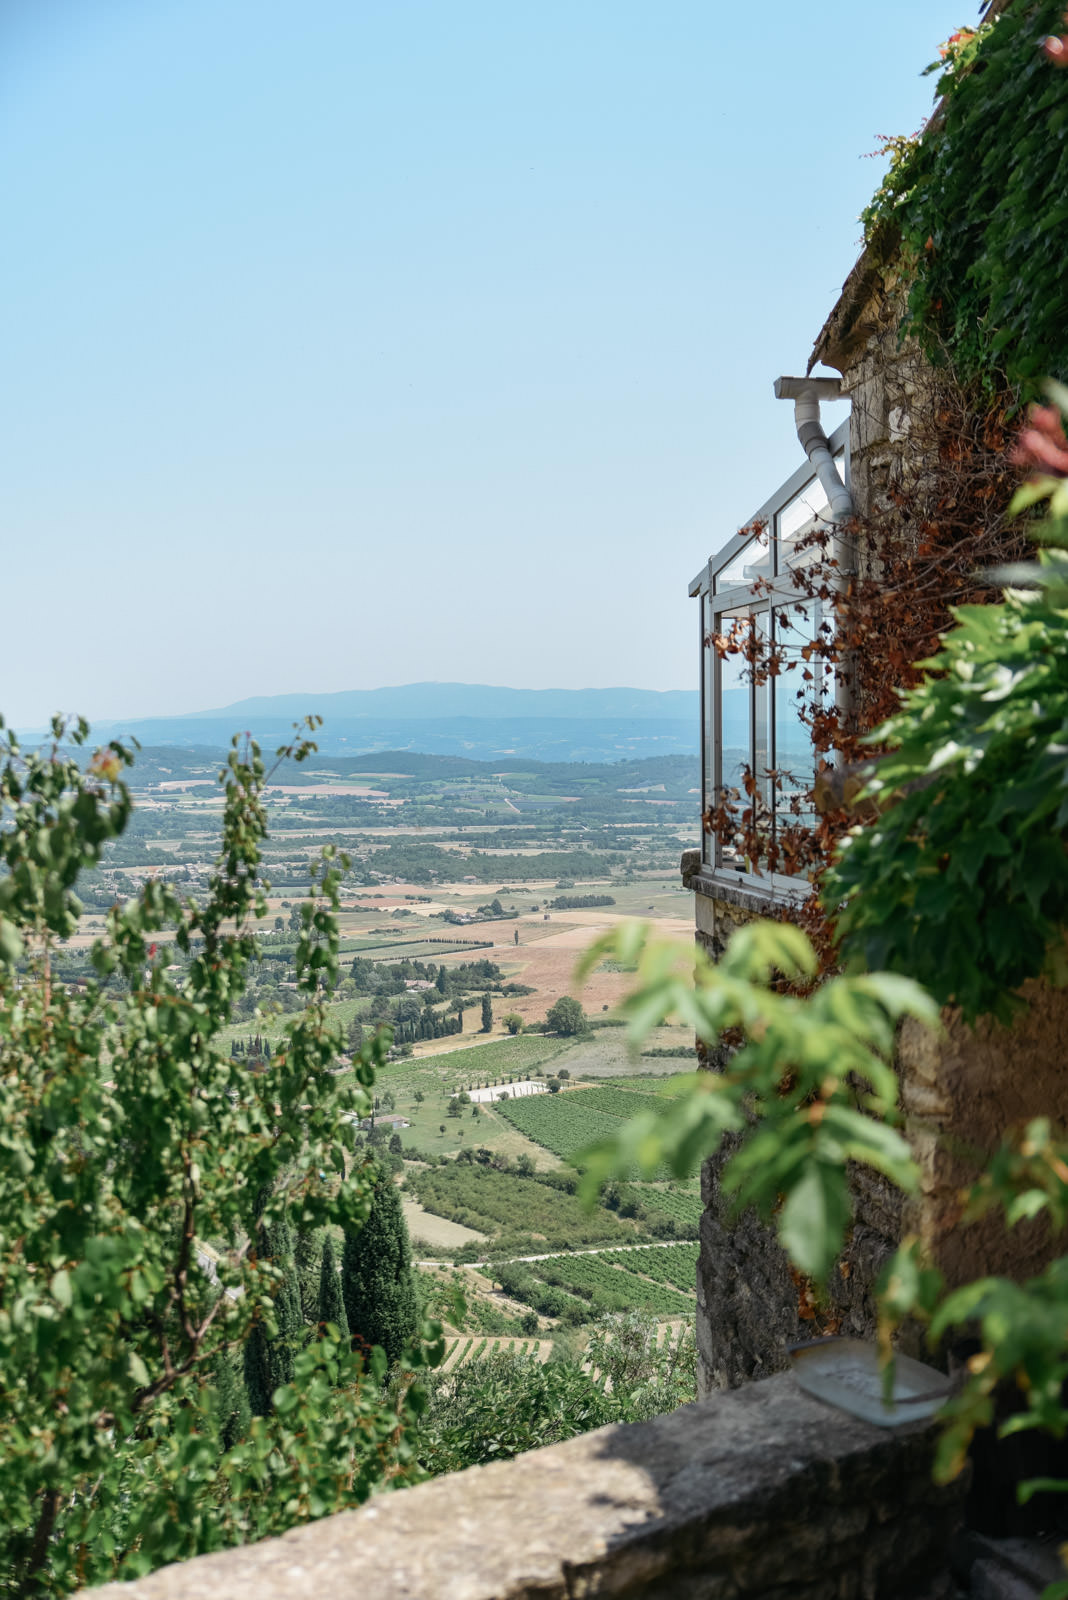 Blog-Mode-And-The-City-Lifestyle-Provence-Voyage-Gordes-9